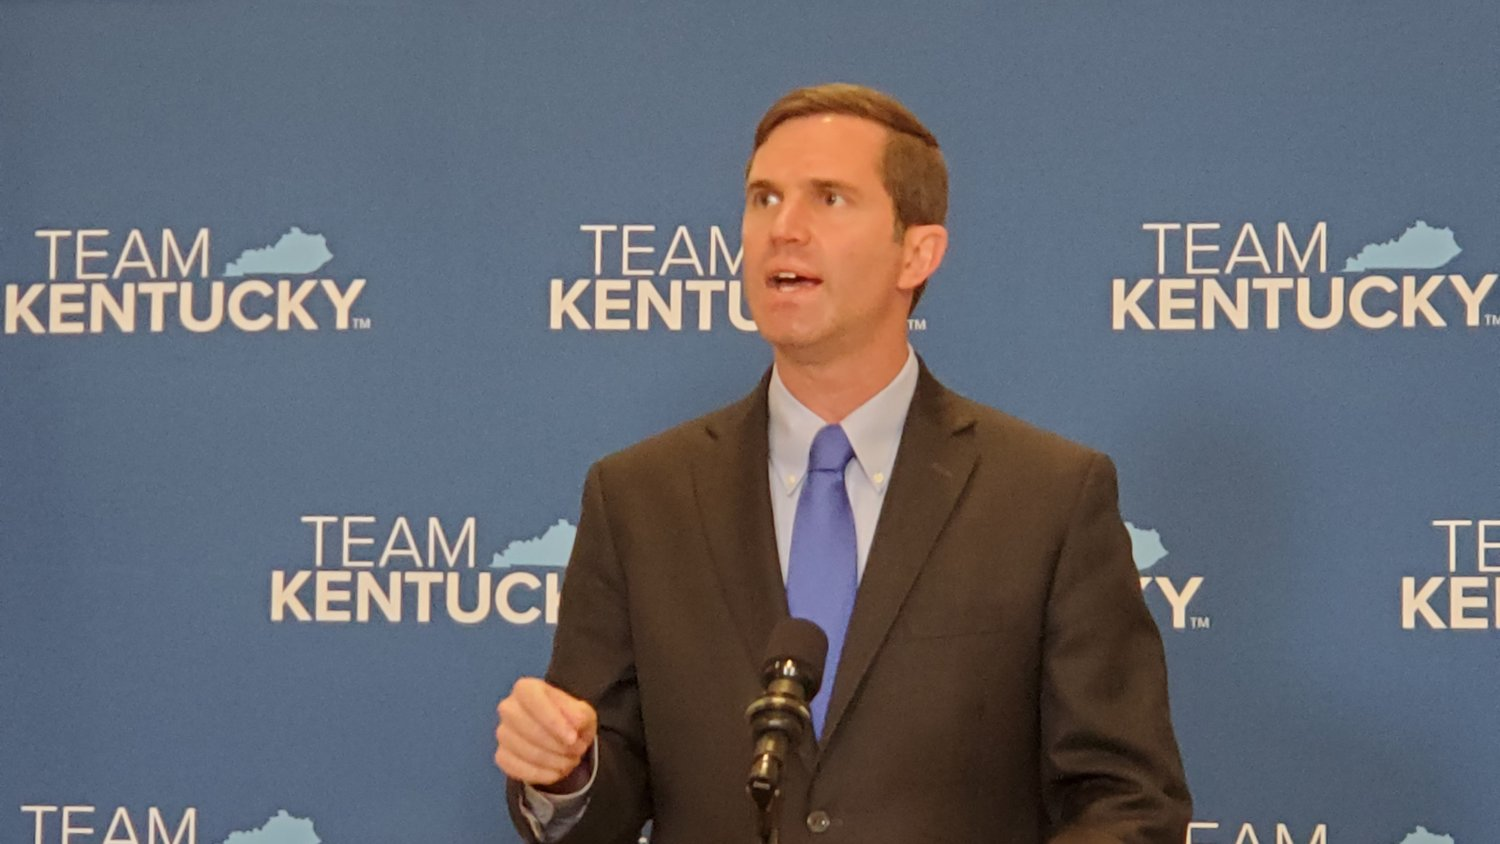 Gov. Andy Beshear said he was signing 10 bills and vetoeing three on Tuesday at a press conference.